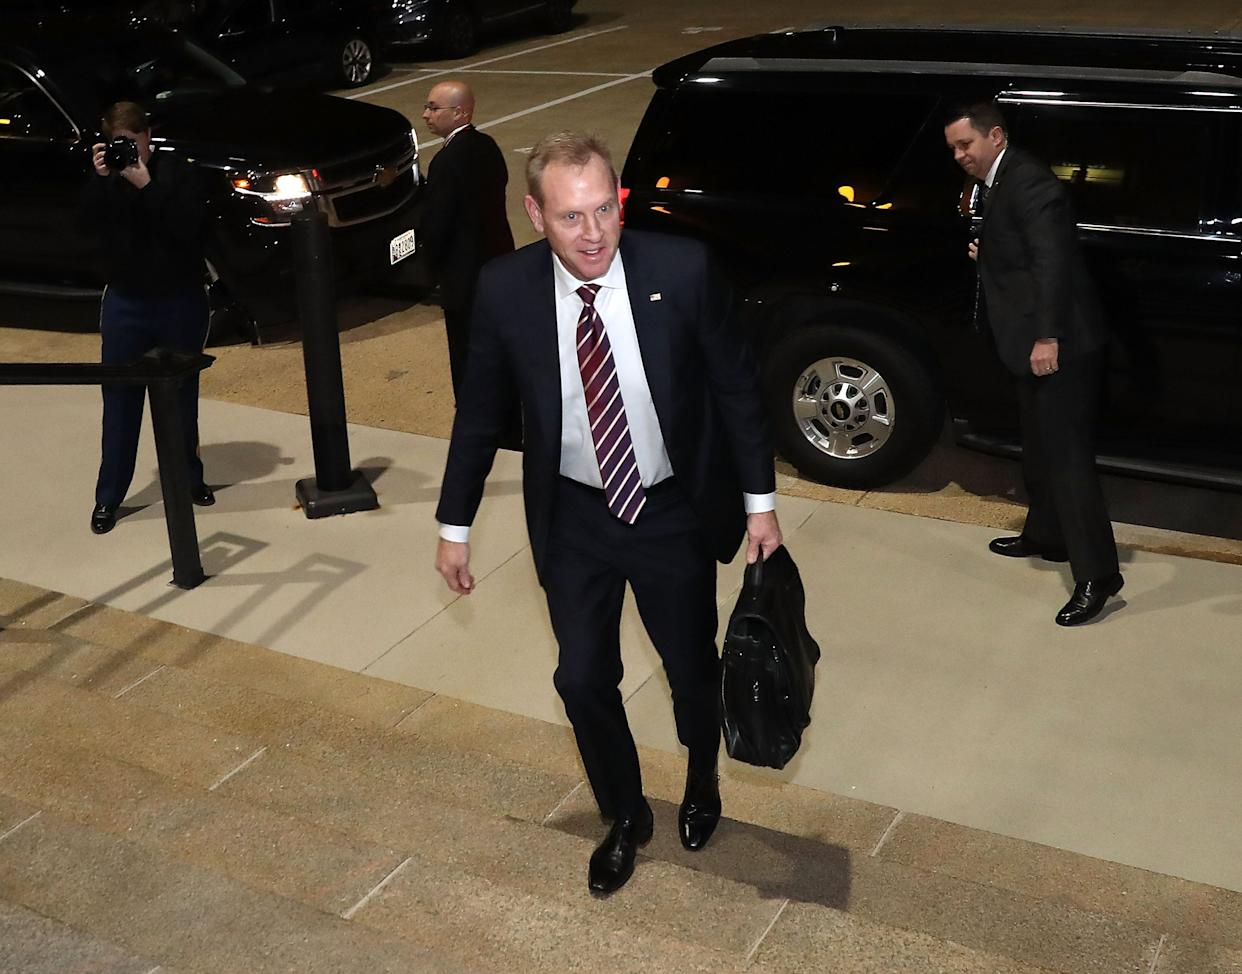 Acting U.S. Defense Secretary Patrick Shanahan arrives at the Pentagon for the first time in his official capacity, on Jan. 2, 2019 in Arlington, Va.